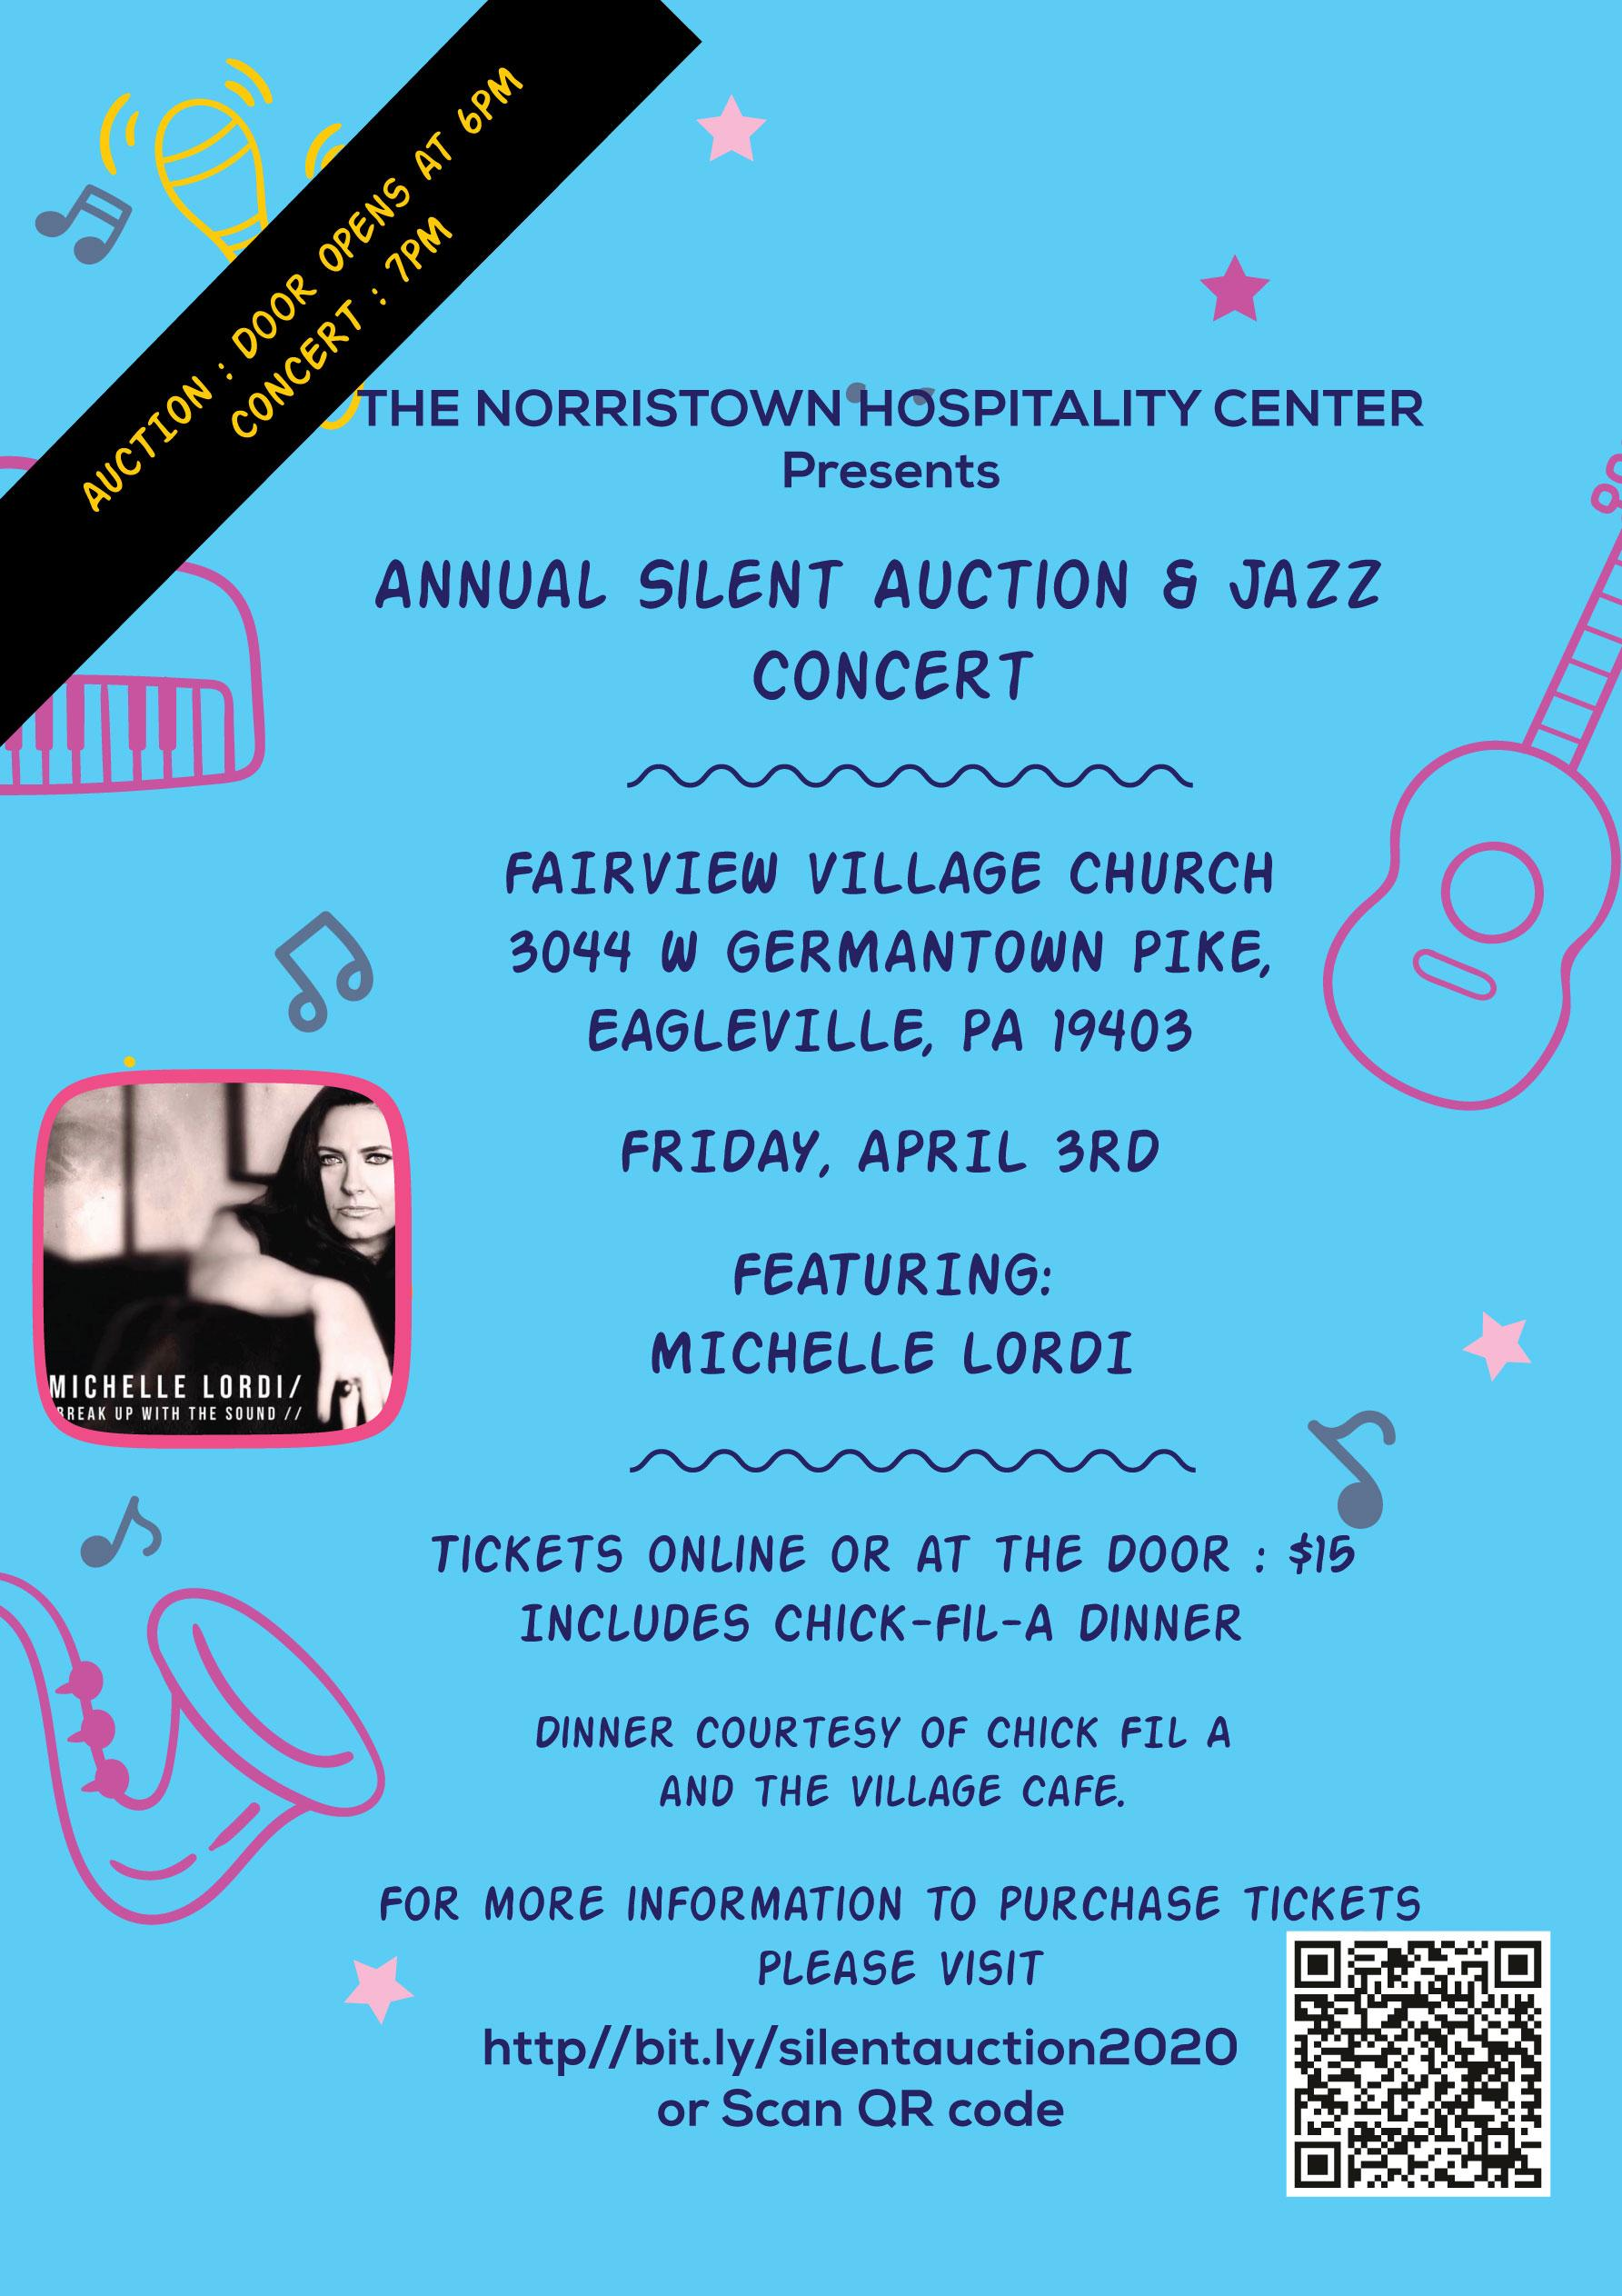 Norristown Hospitality Center 2020 Silent Auction & Concert